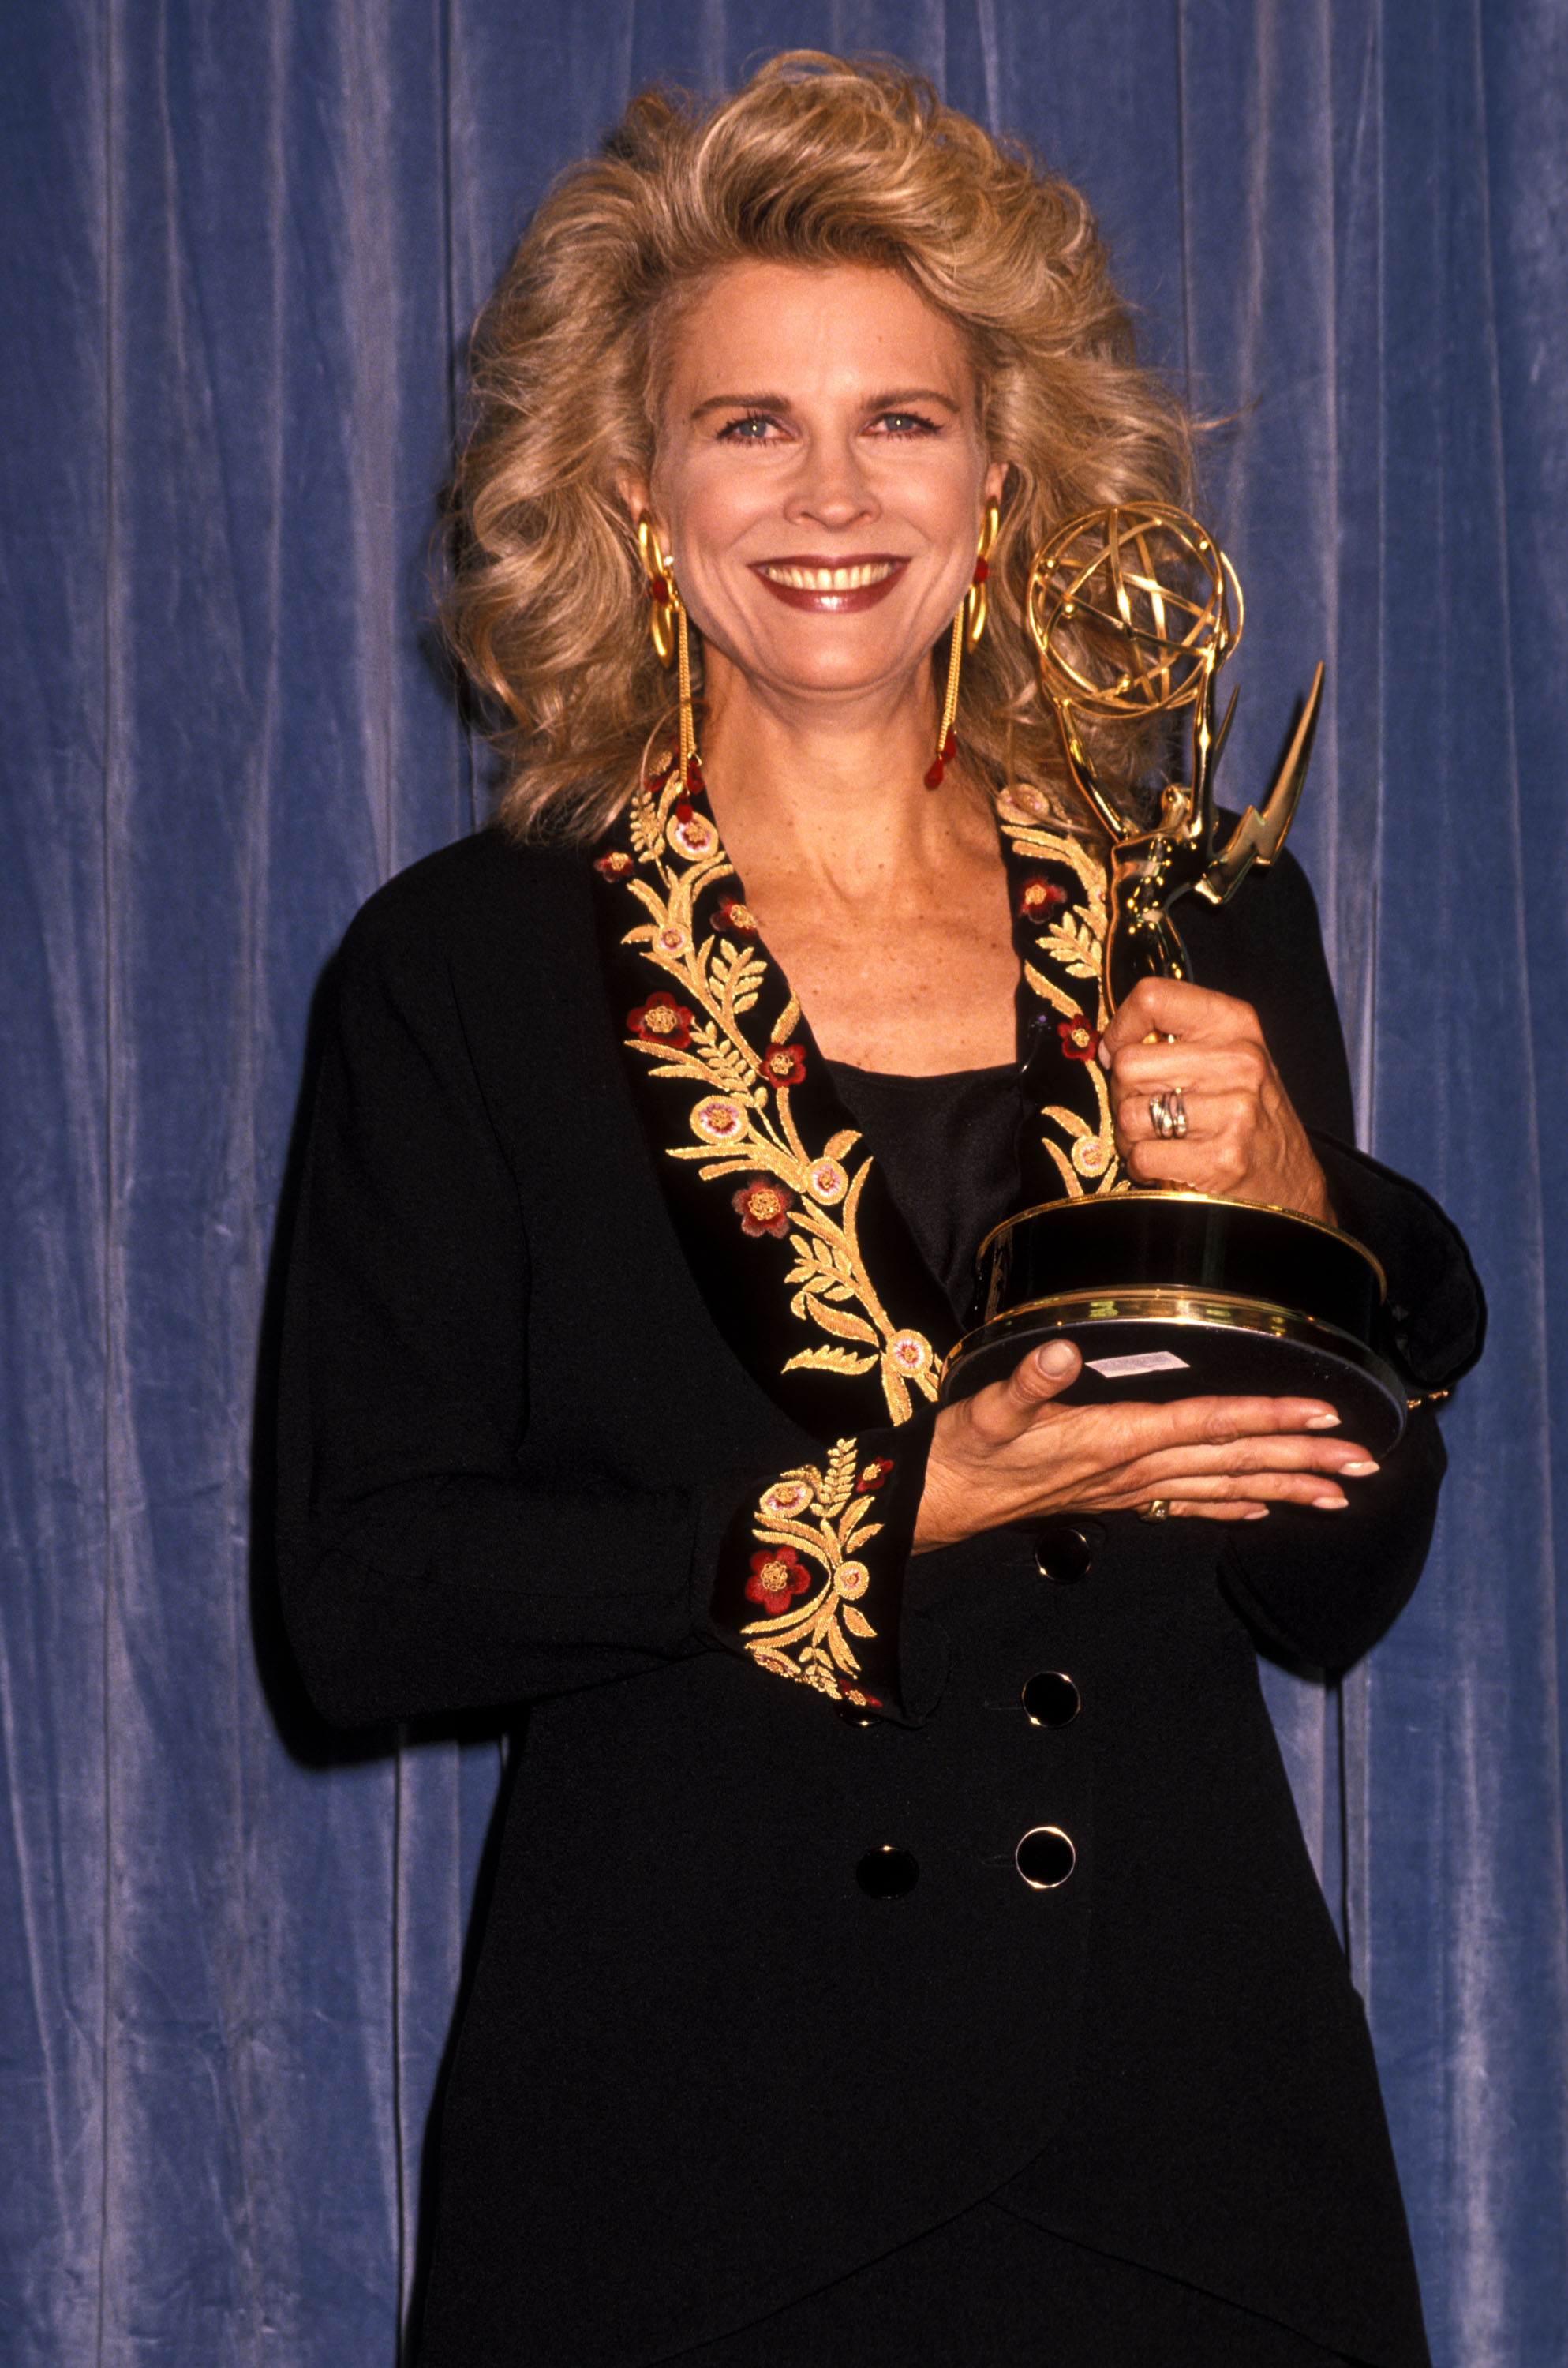 Actress Candice Bergen attends the 42nd Annual Primetime Emmy Awards on September 16, 1990 at Pasadena Civic Auditorium in Pasadena, California.